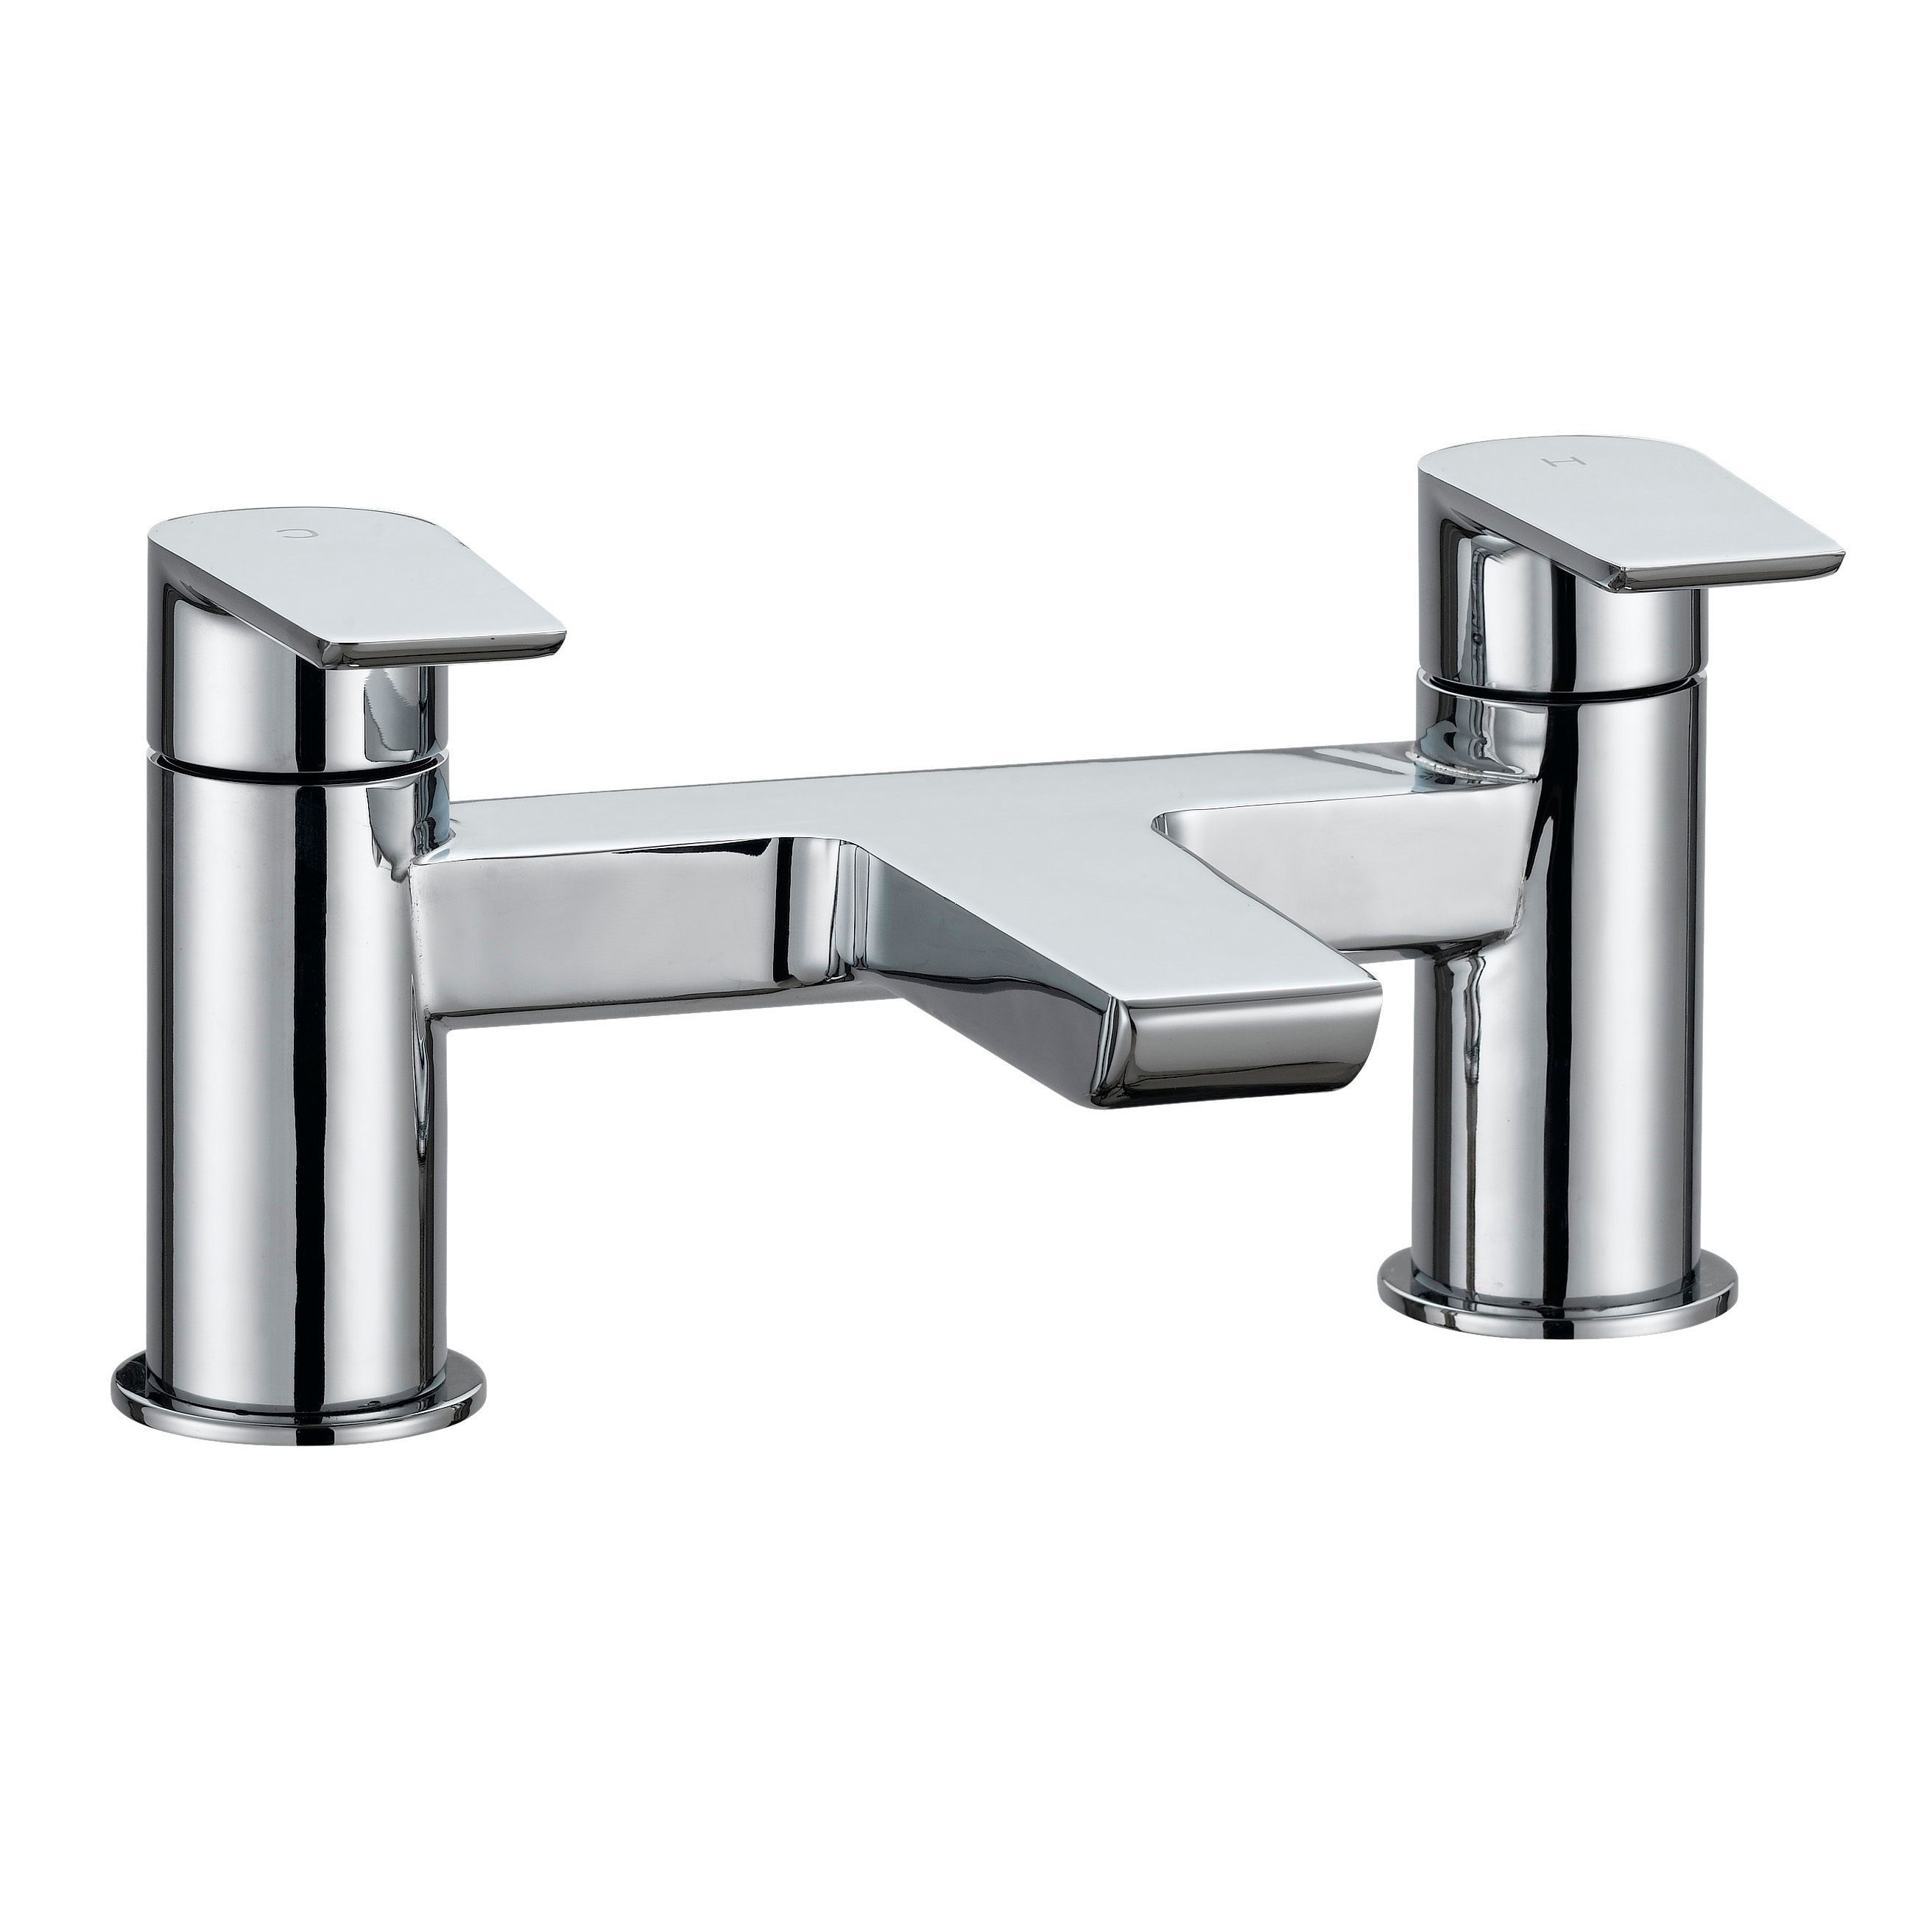 Cooke & Lewis Ricci Chrome Bath Mixer Tap | Departments ...